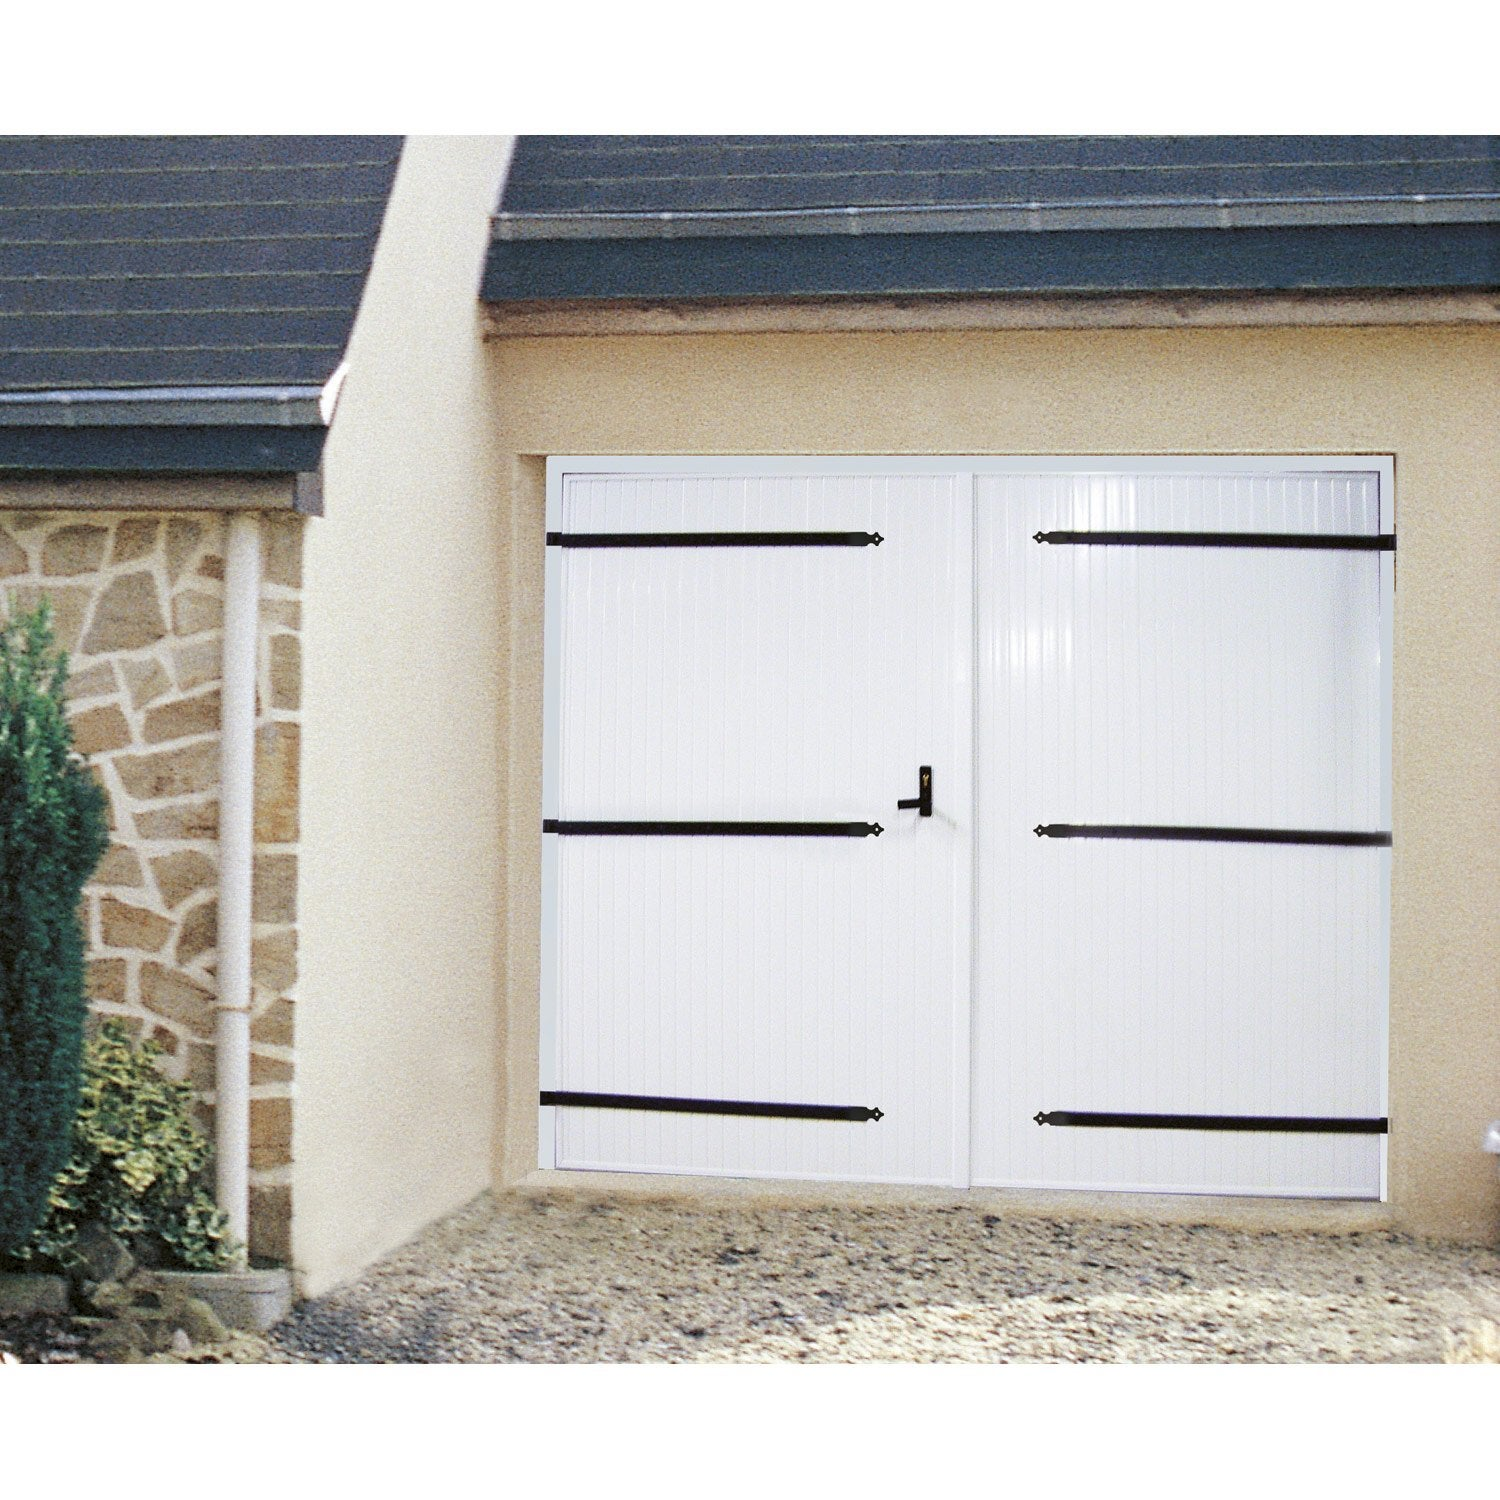 Porte de garage 2 vantaux artens x cm leroy for Porte de garage 2 battants sur mesure